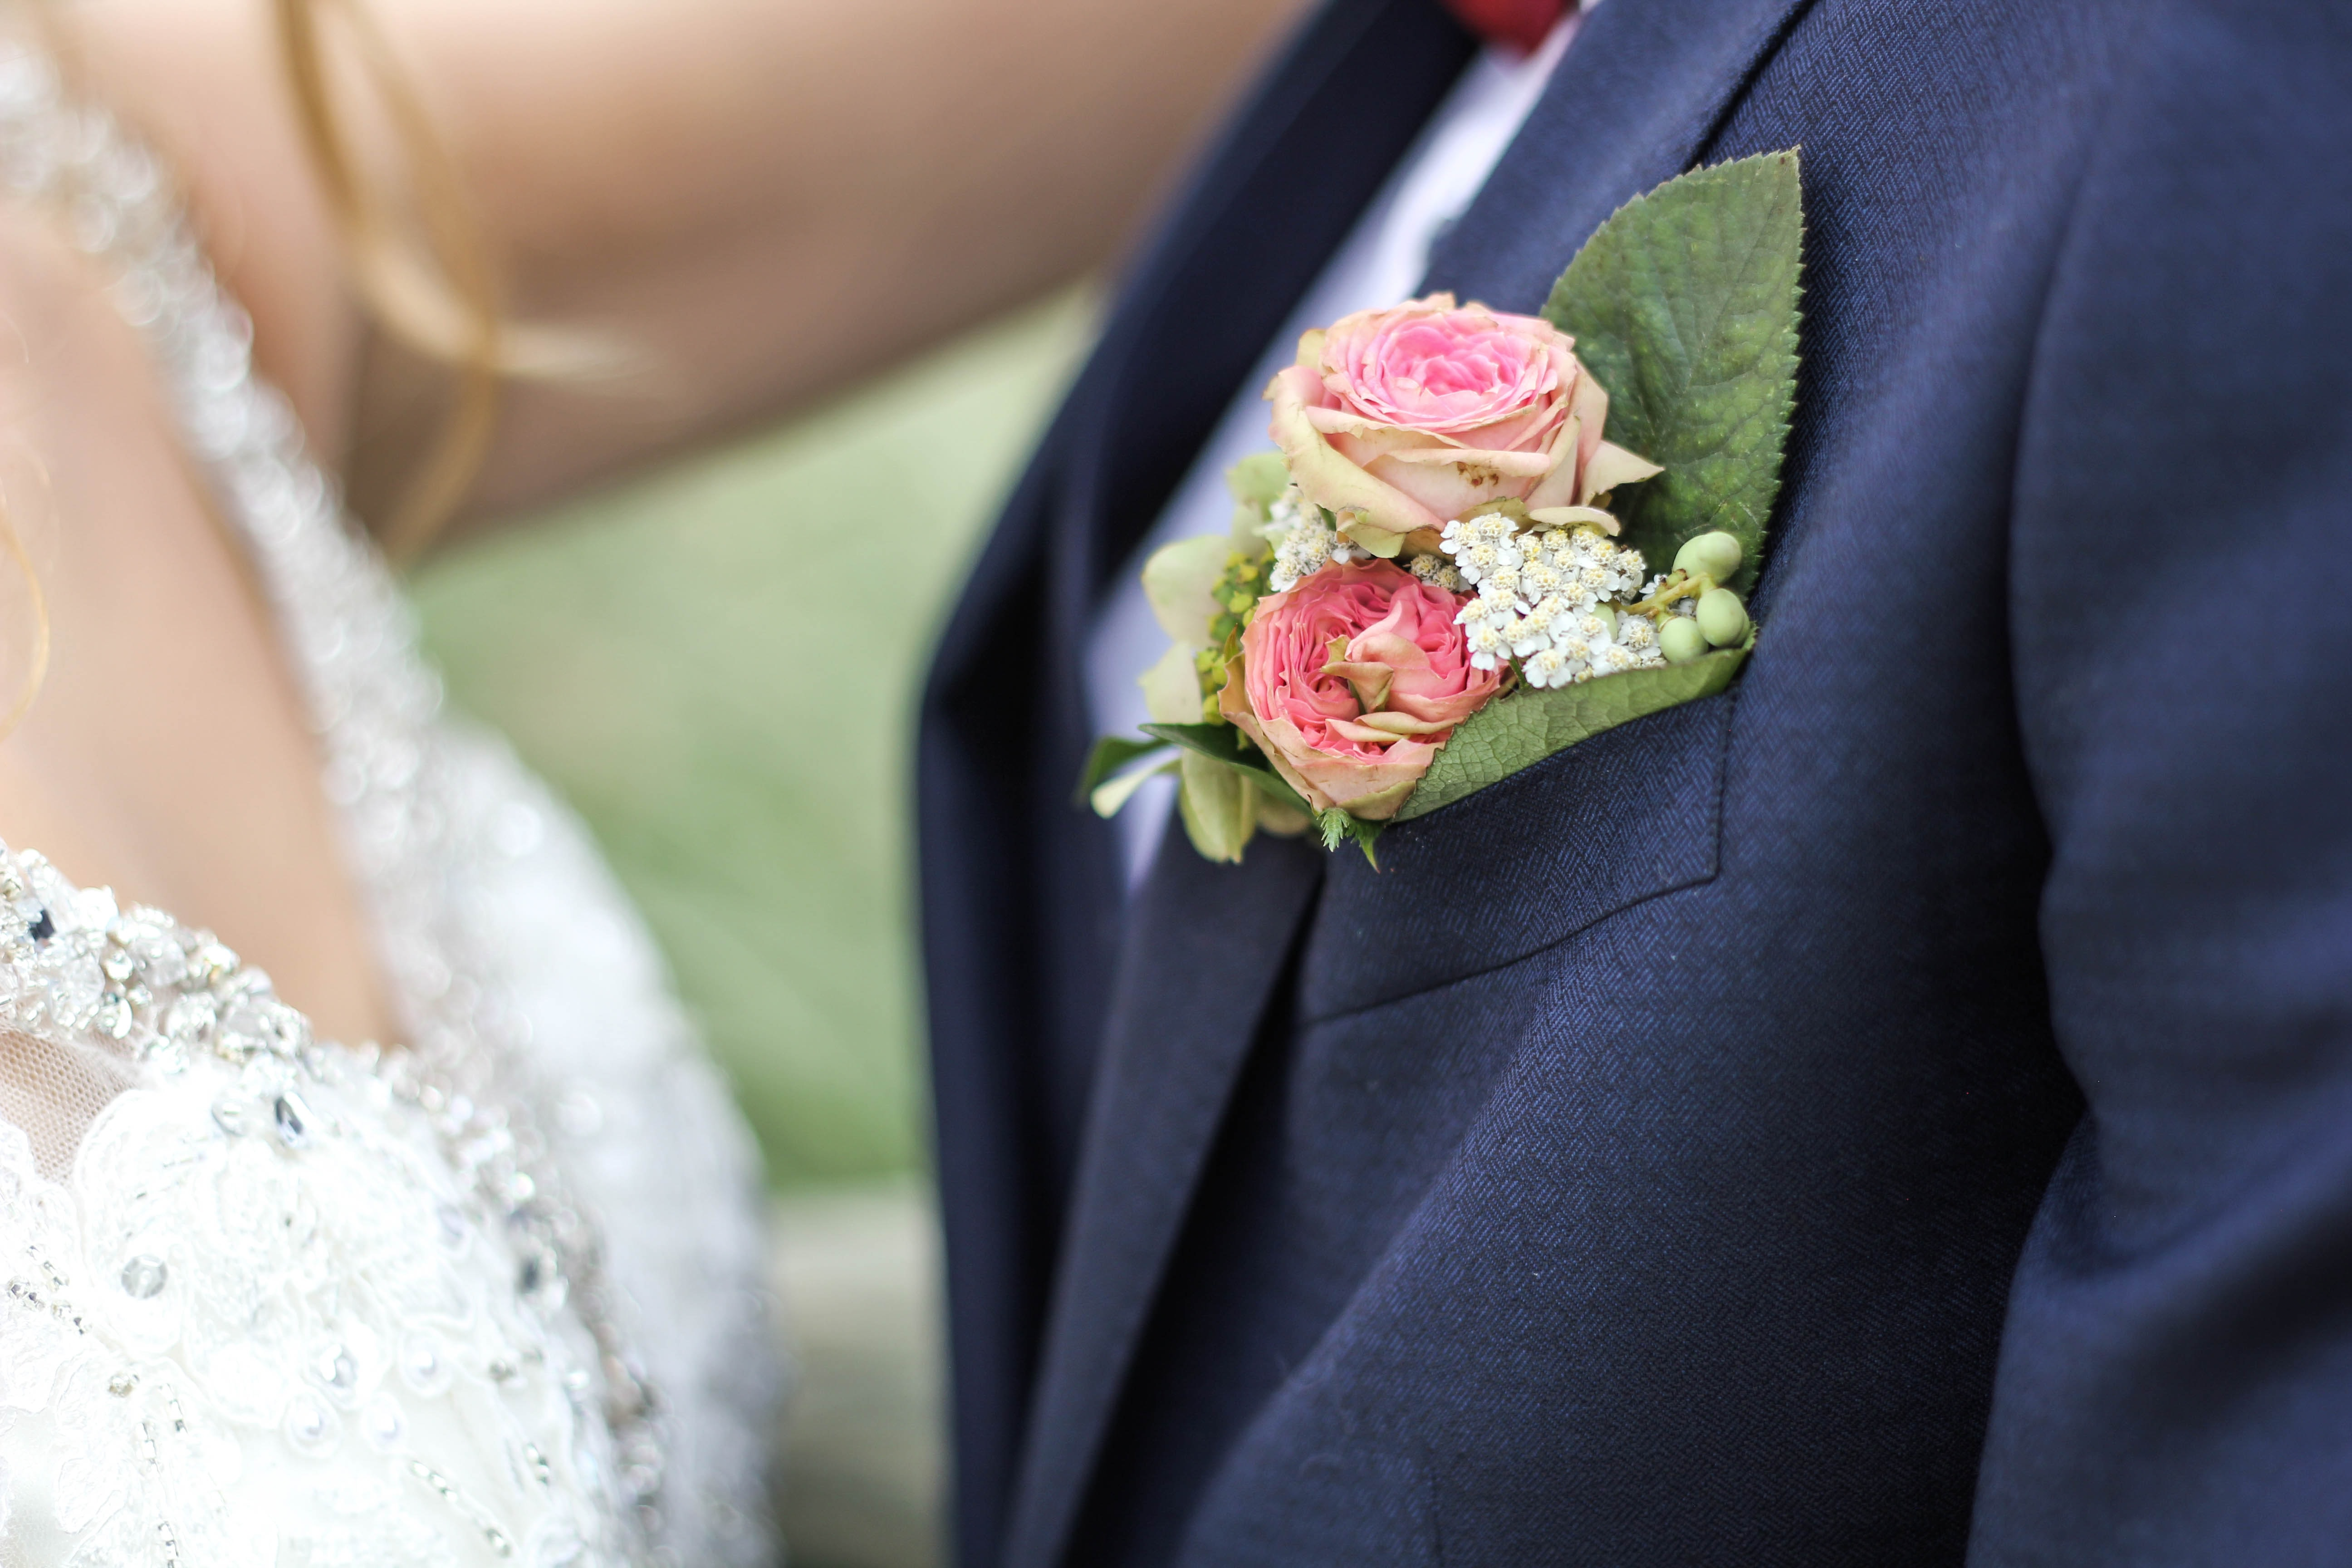 A small bouquet of roses and tiny white flowers in the buttonhole of a groom's suit